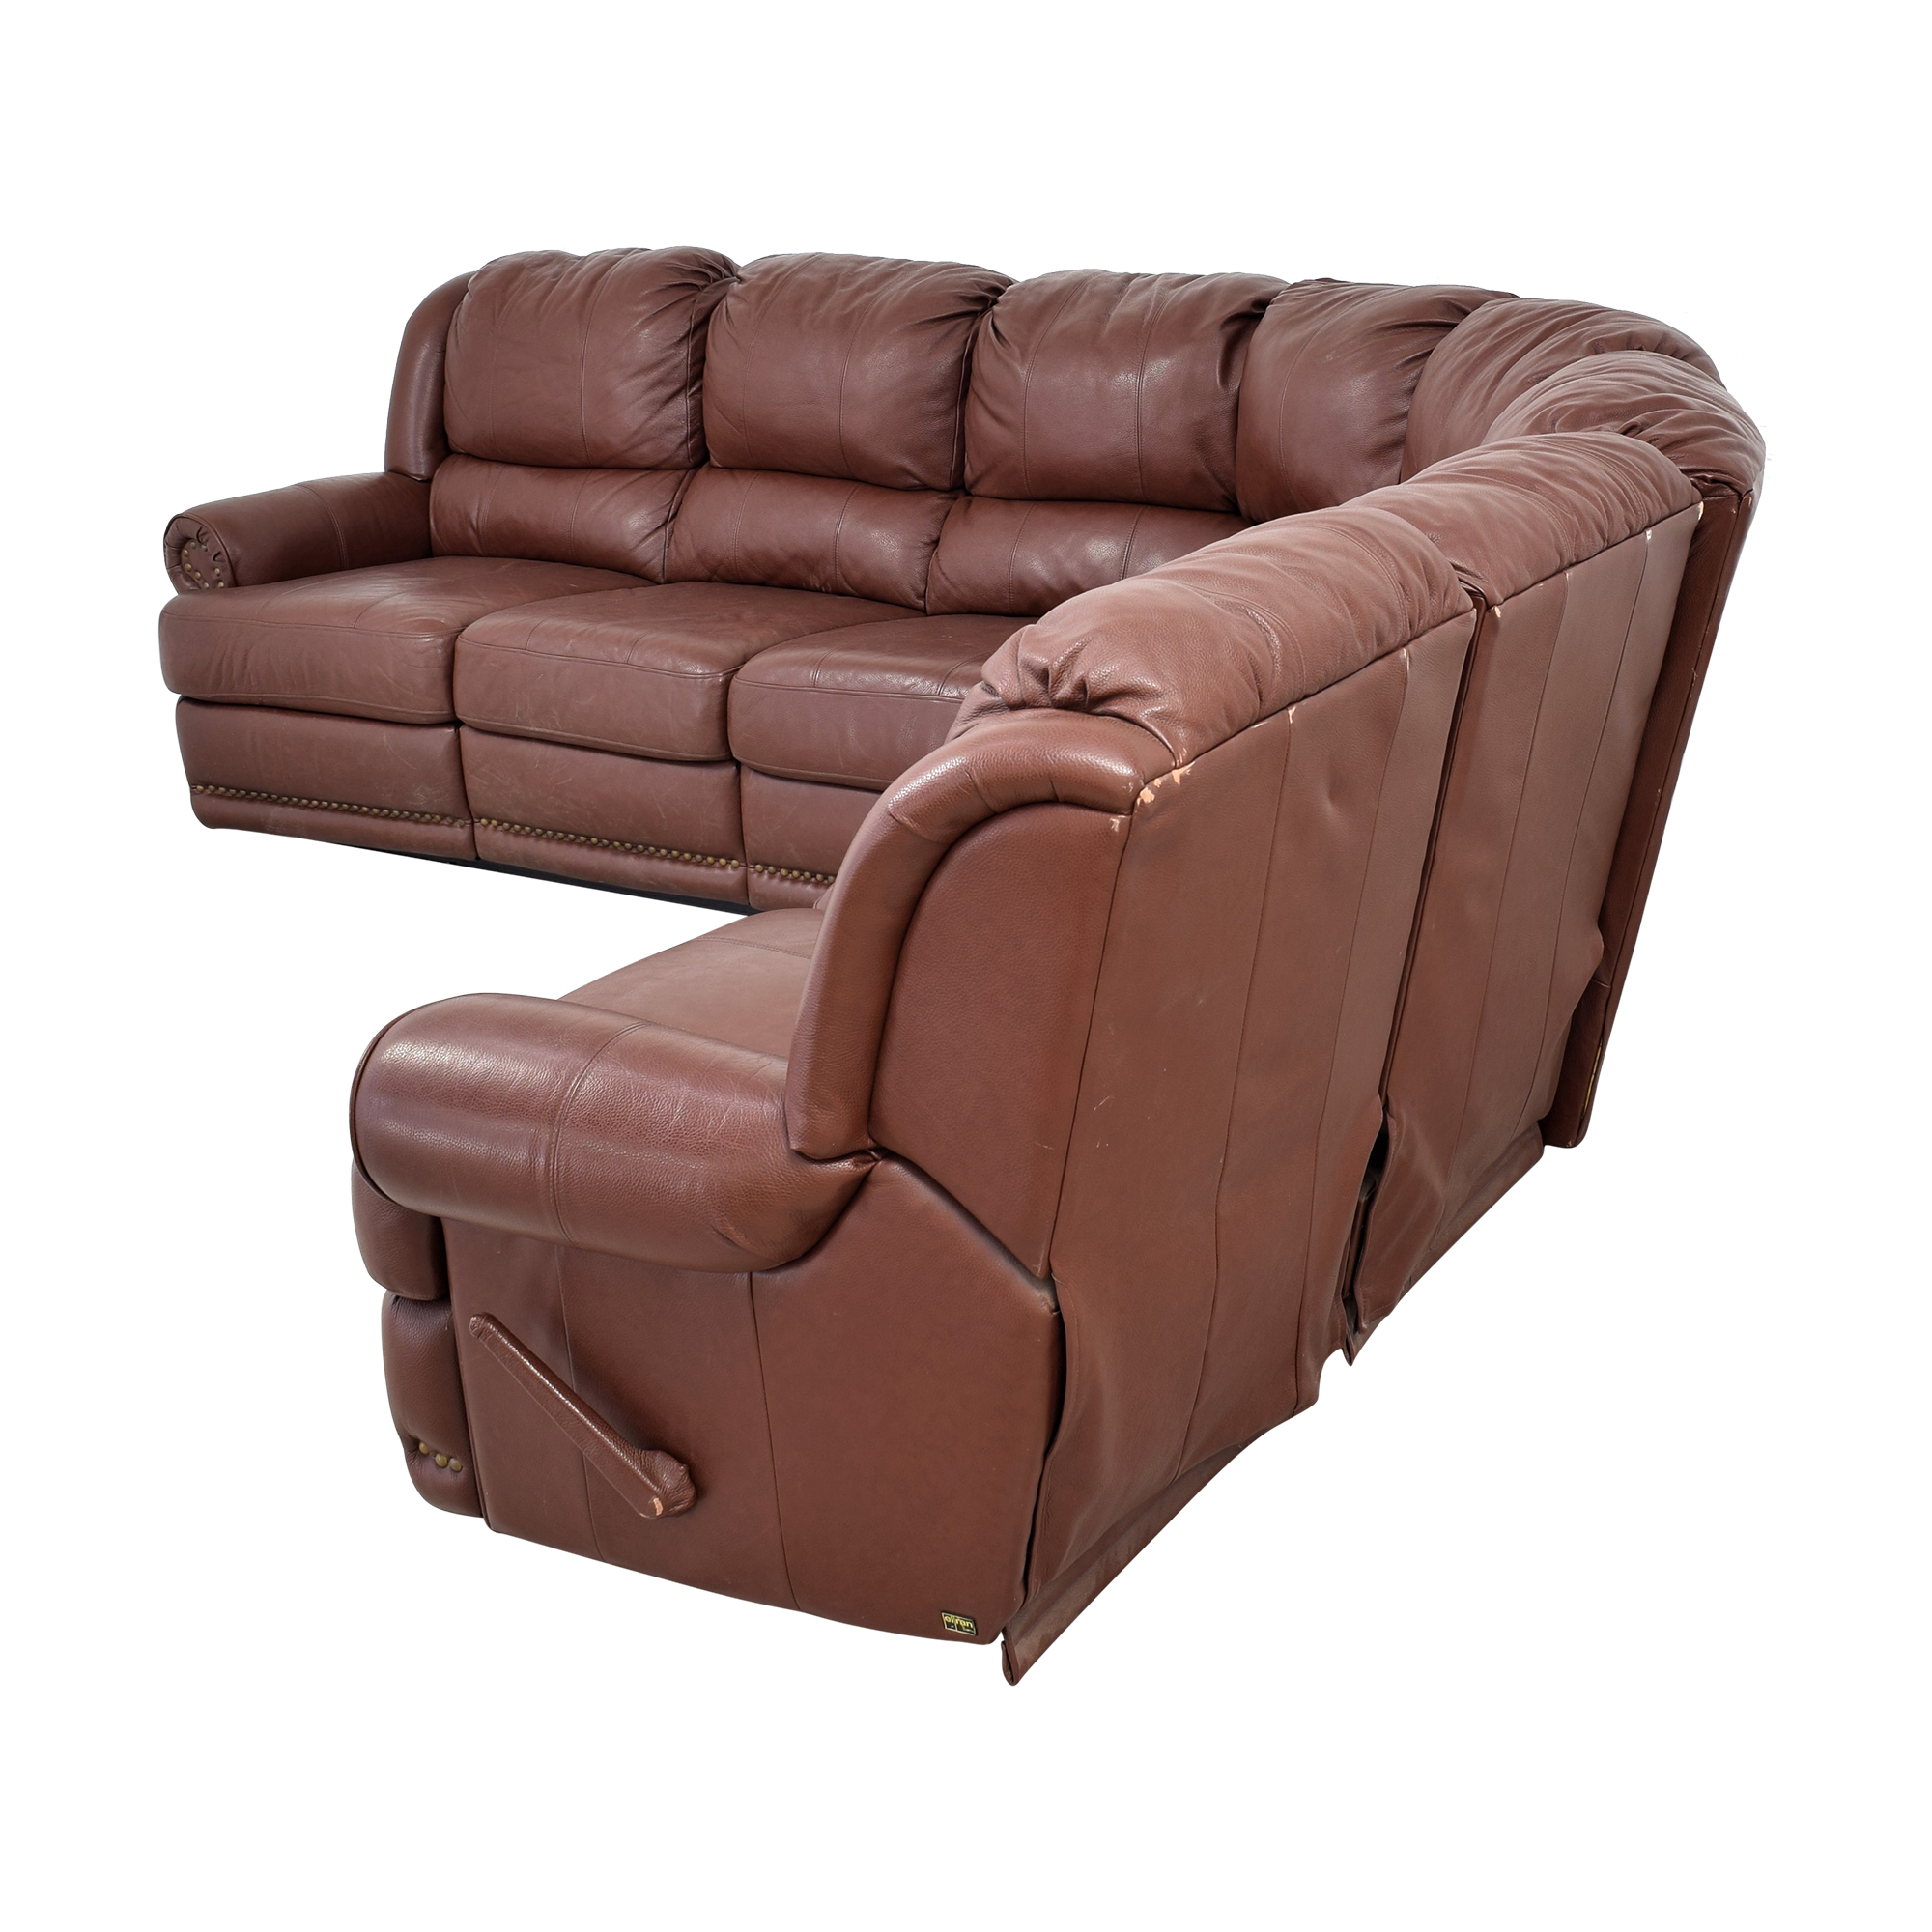 Elran Elran Sectional Sofa with Recliner used